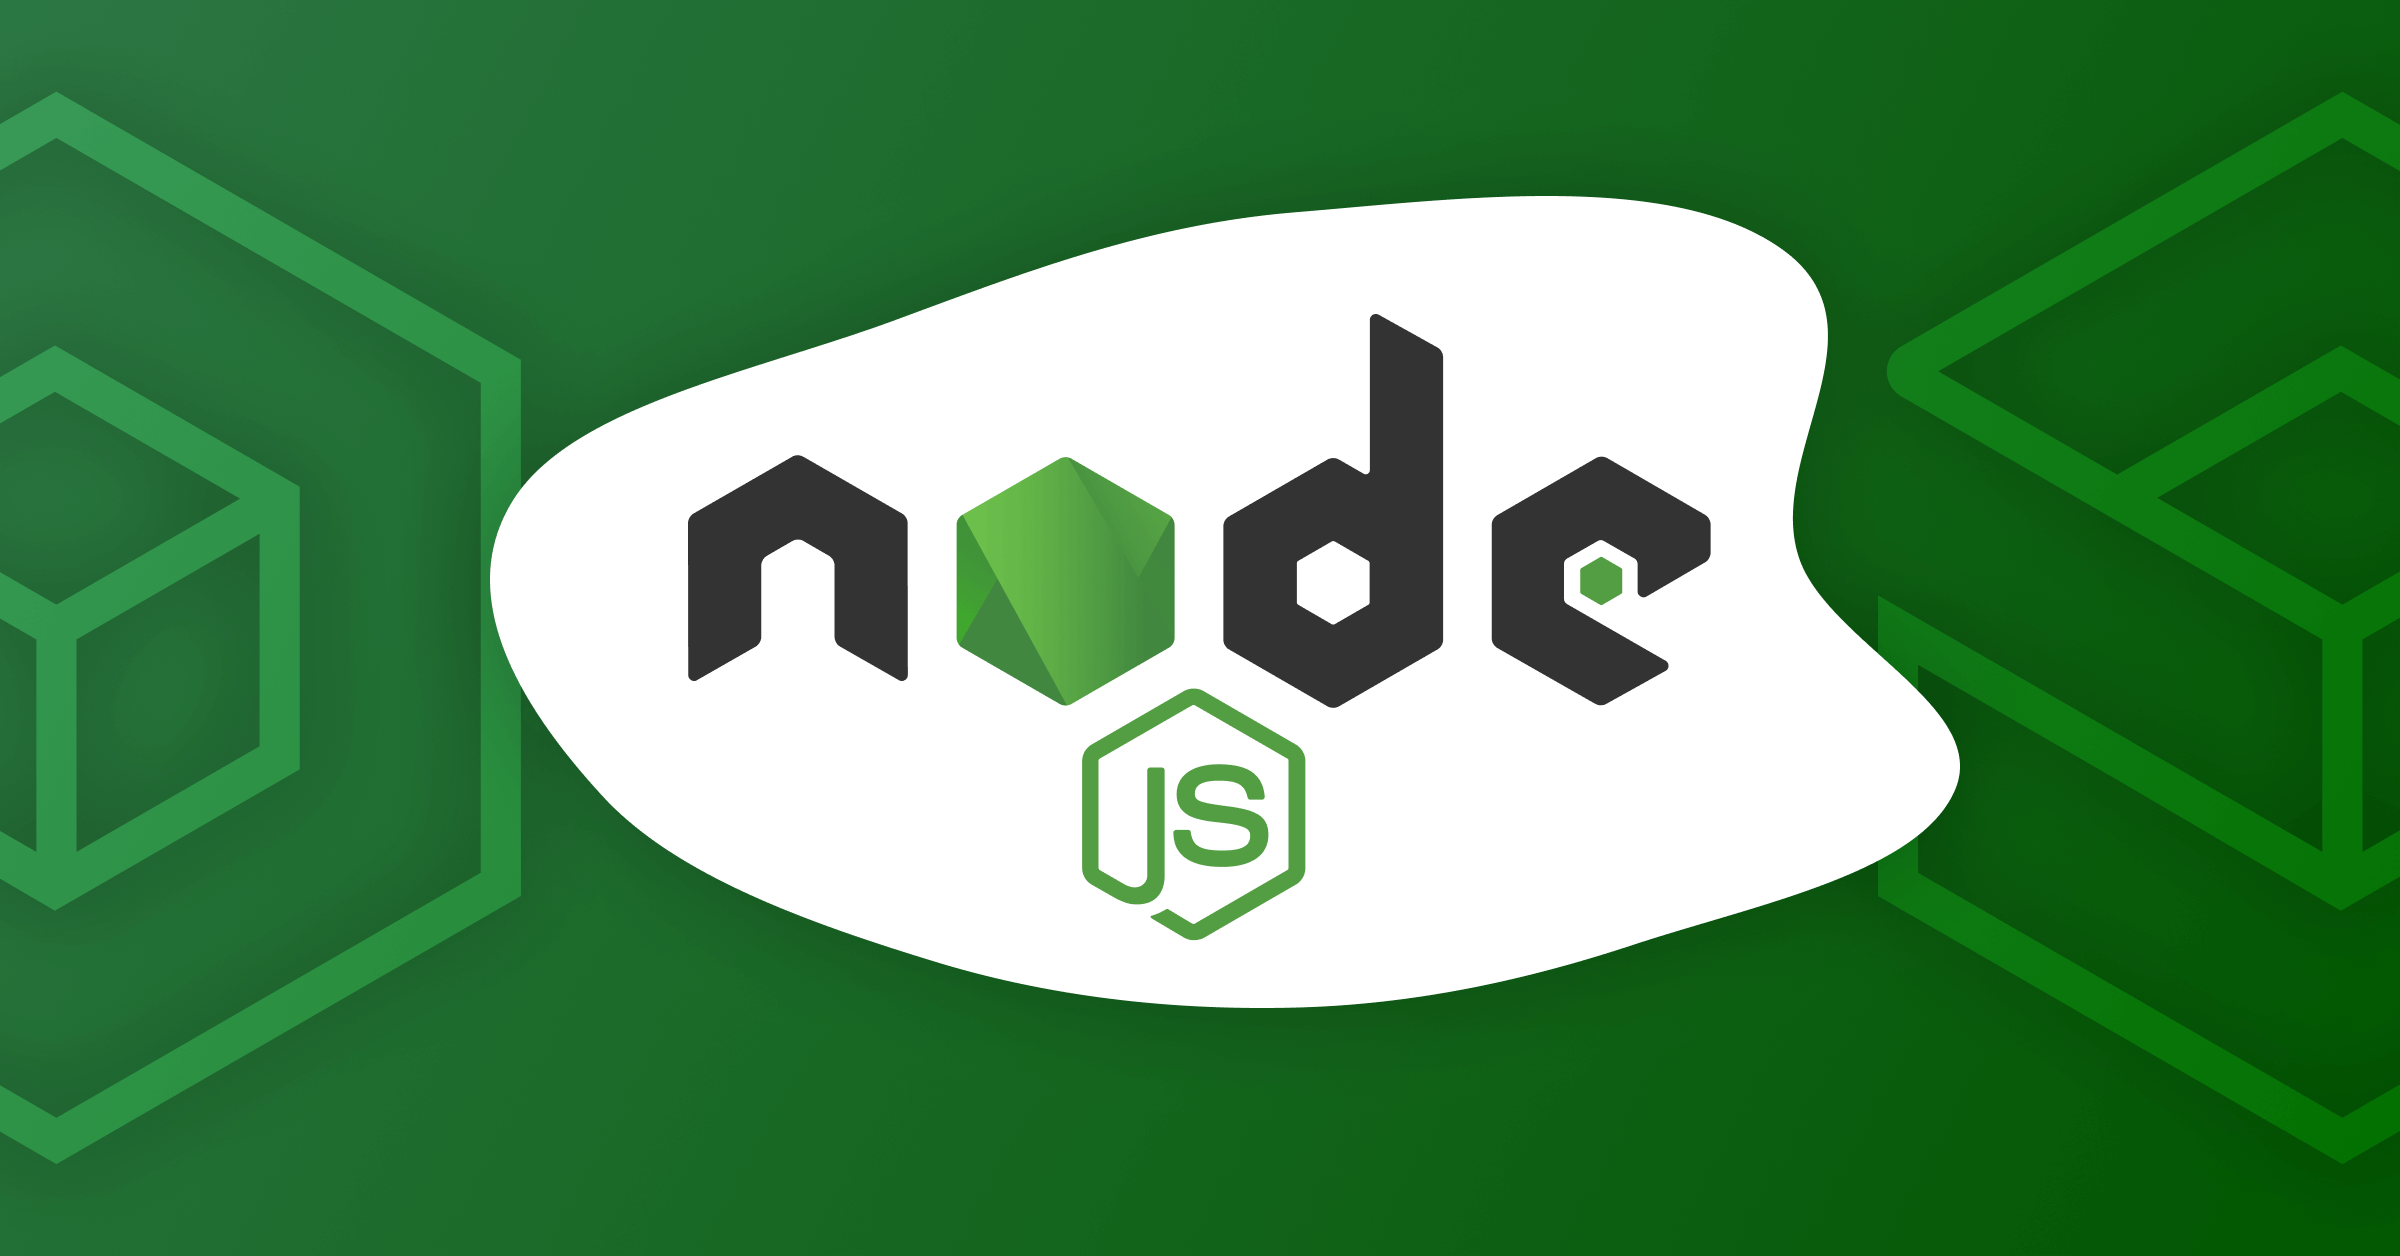 Node.JS and Observability